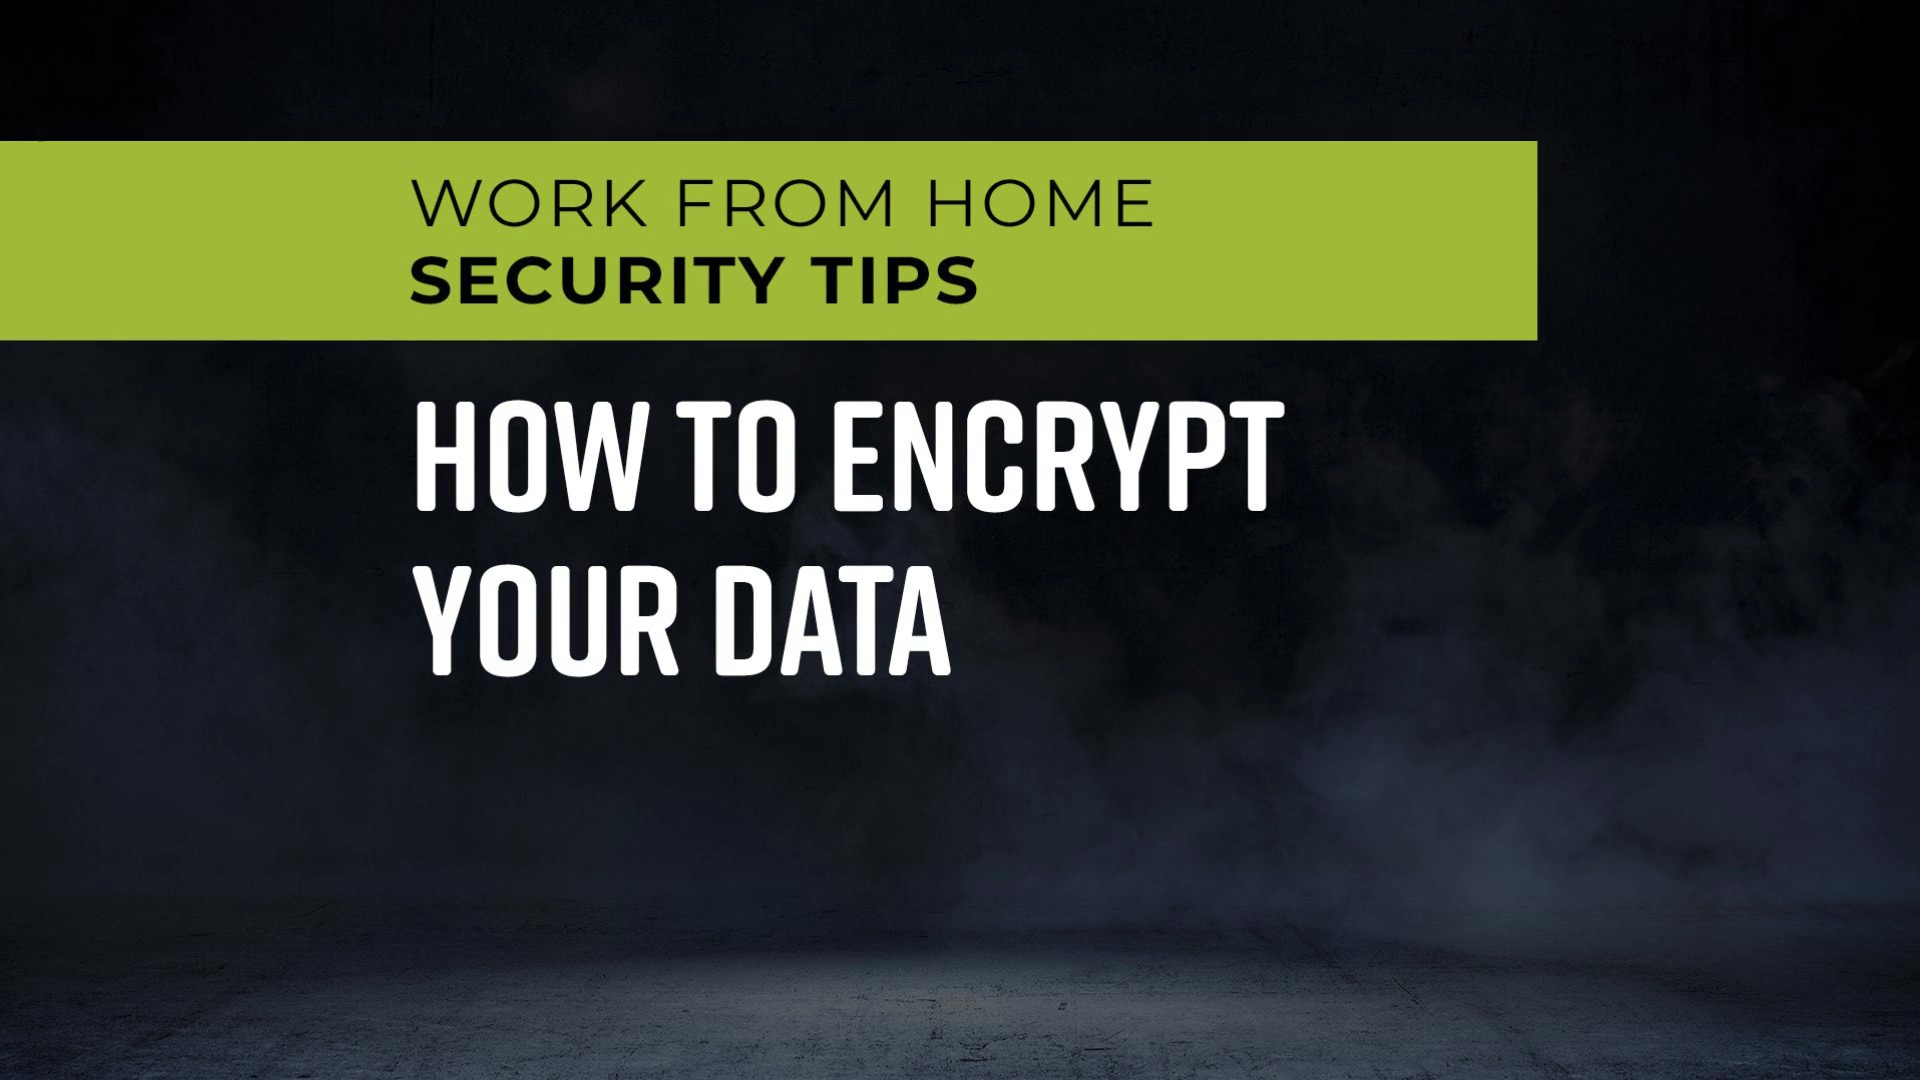 Work_From_Home_Security_Tips_-_How_to_Encrypt_Your_Data_1080p